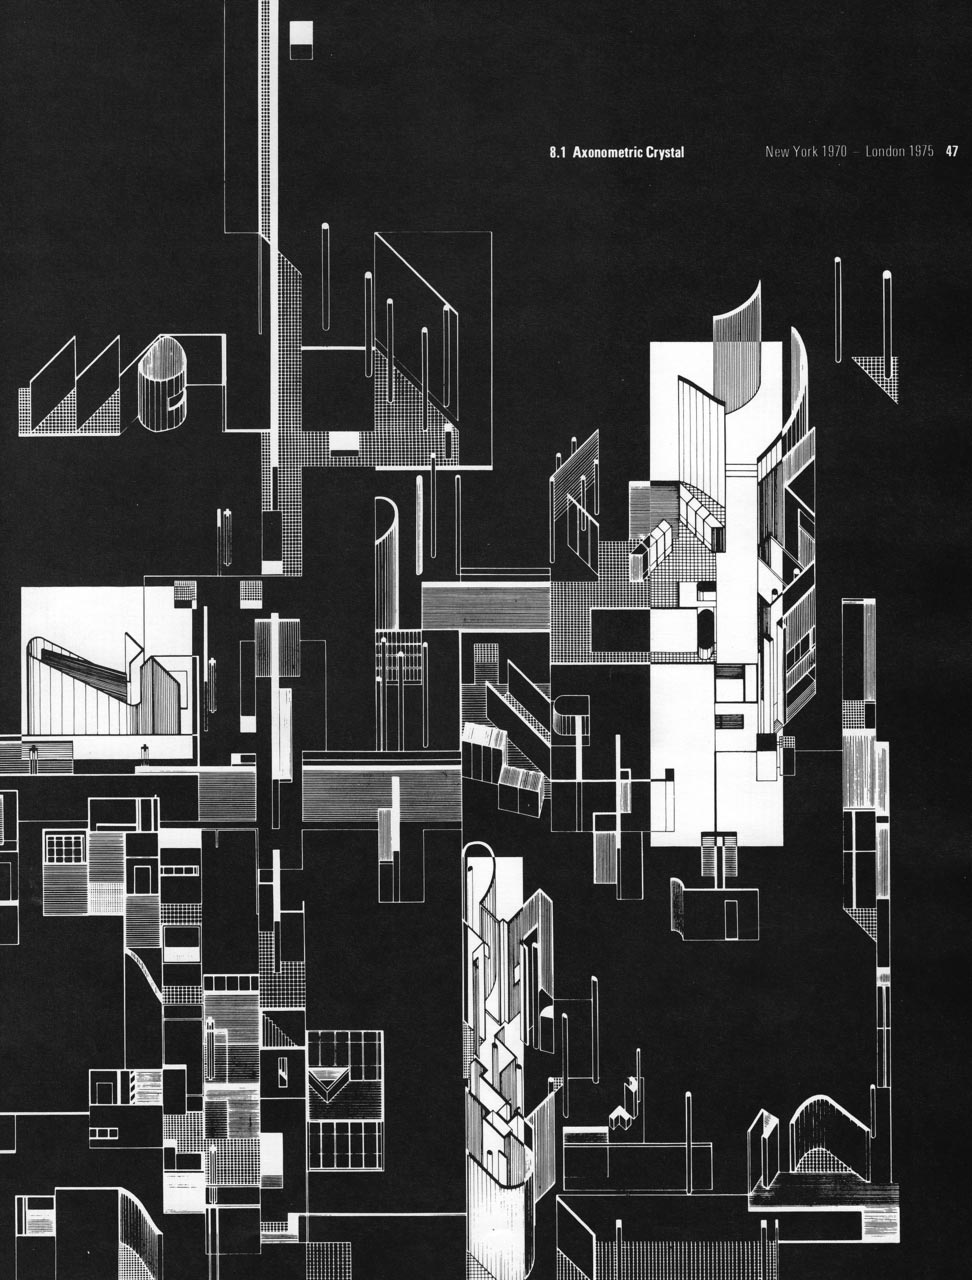 Axonometric Crystal New York 1970 - London 1975